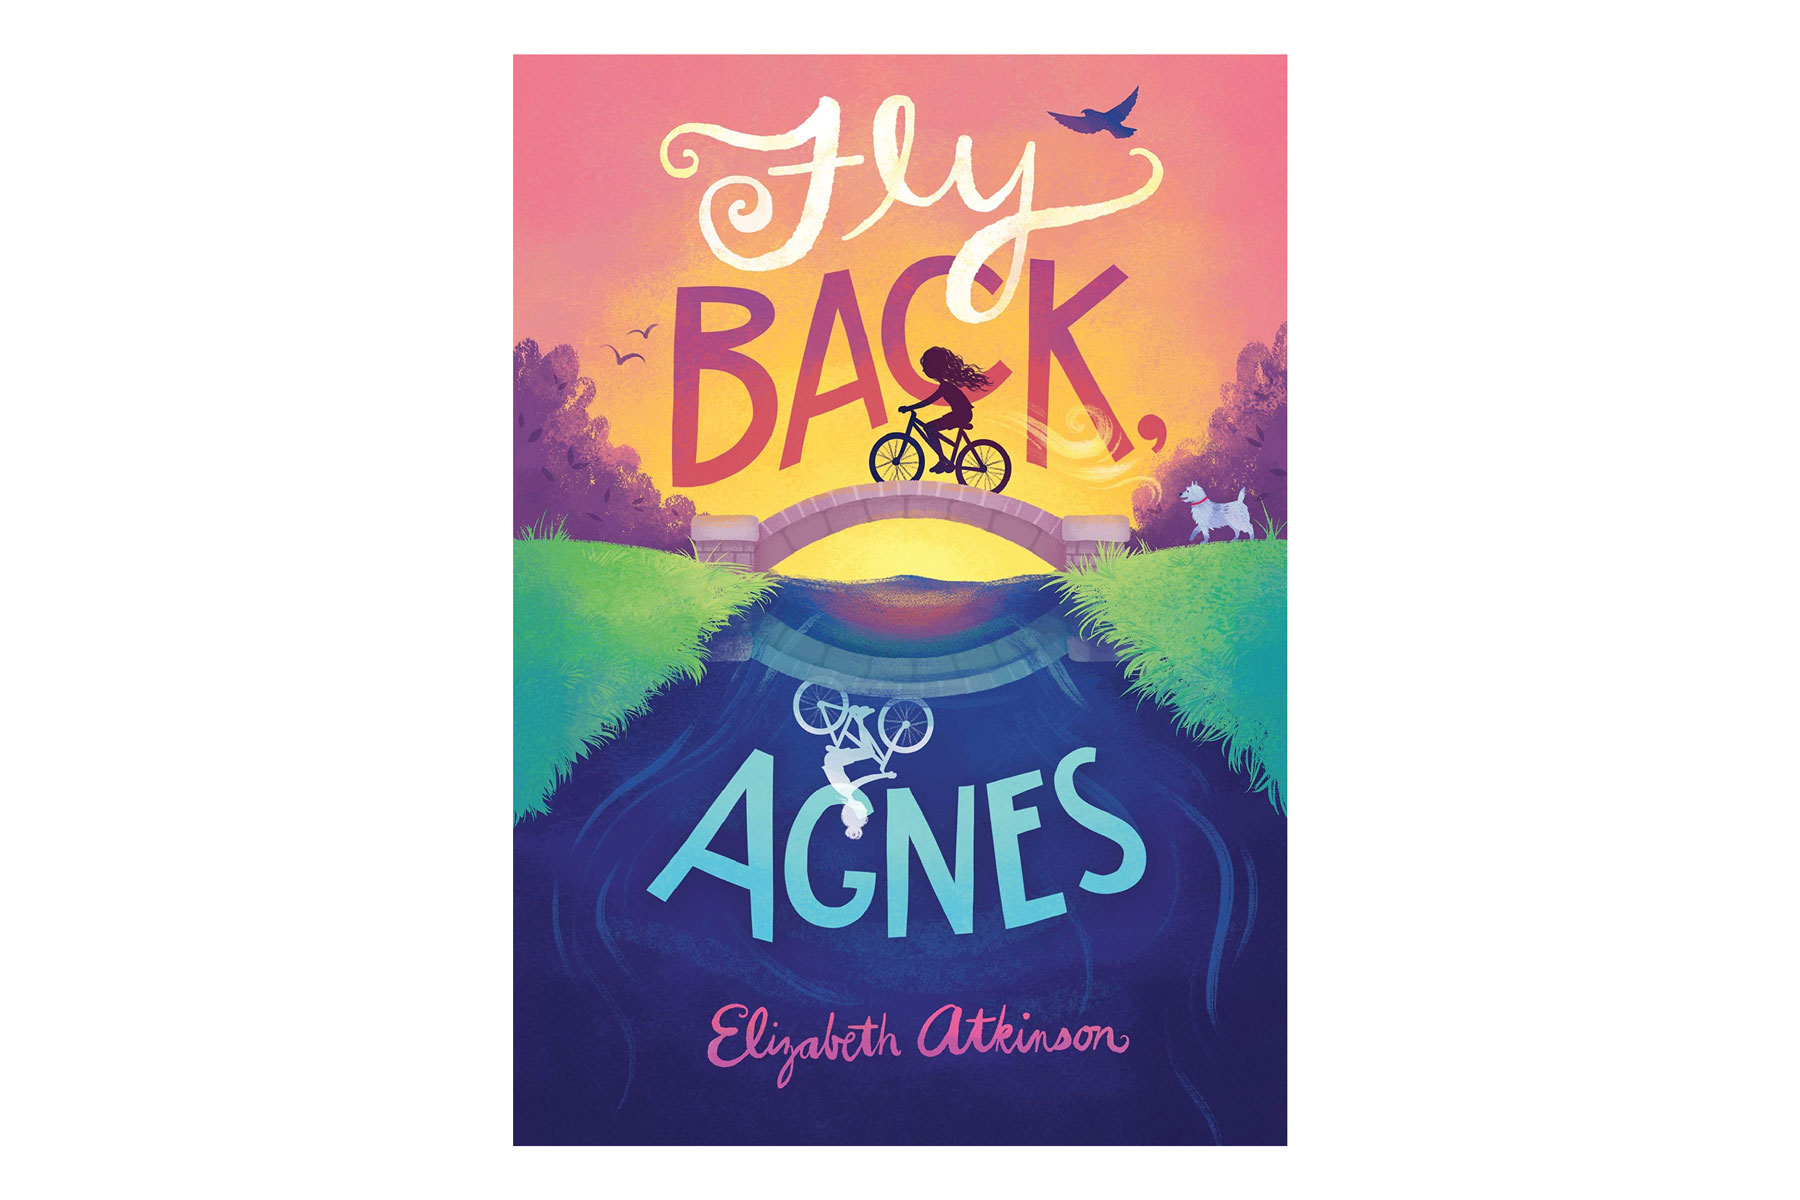 Fly Back, Agnes book